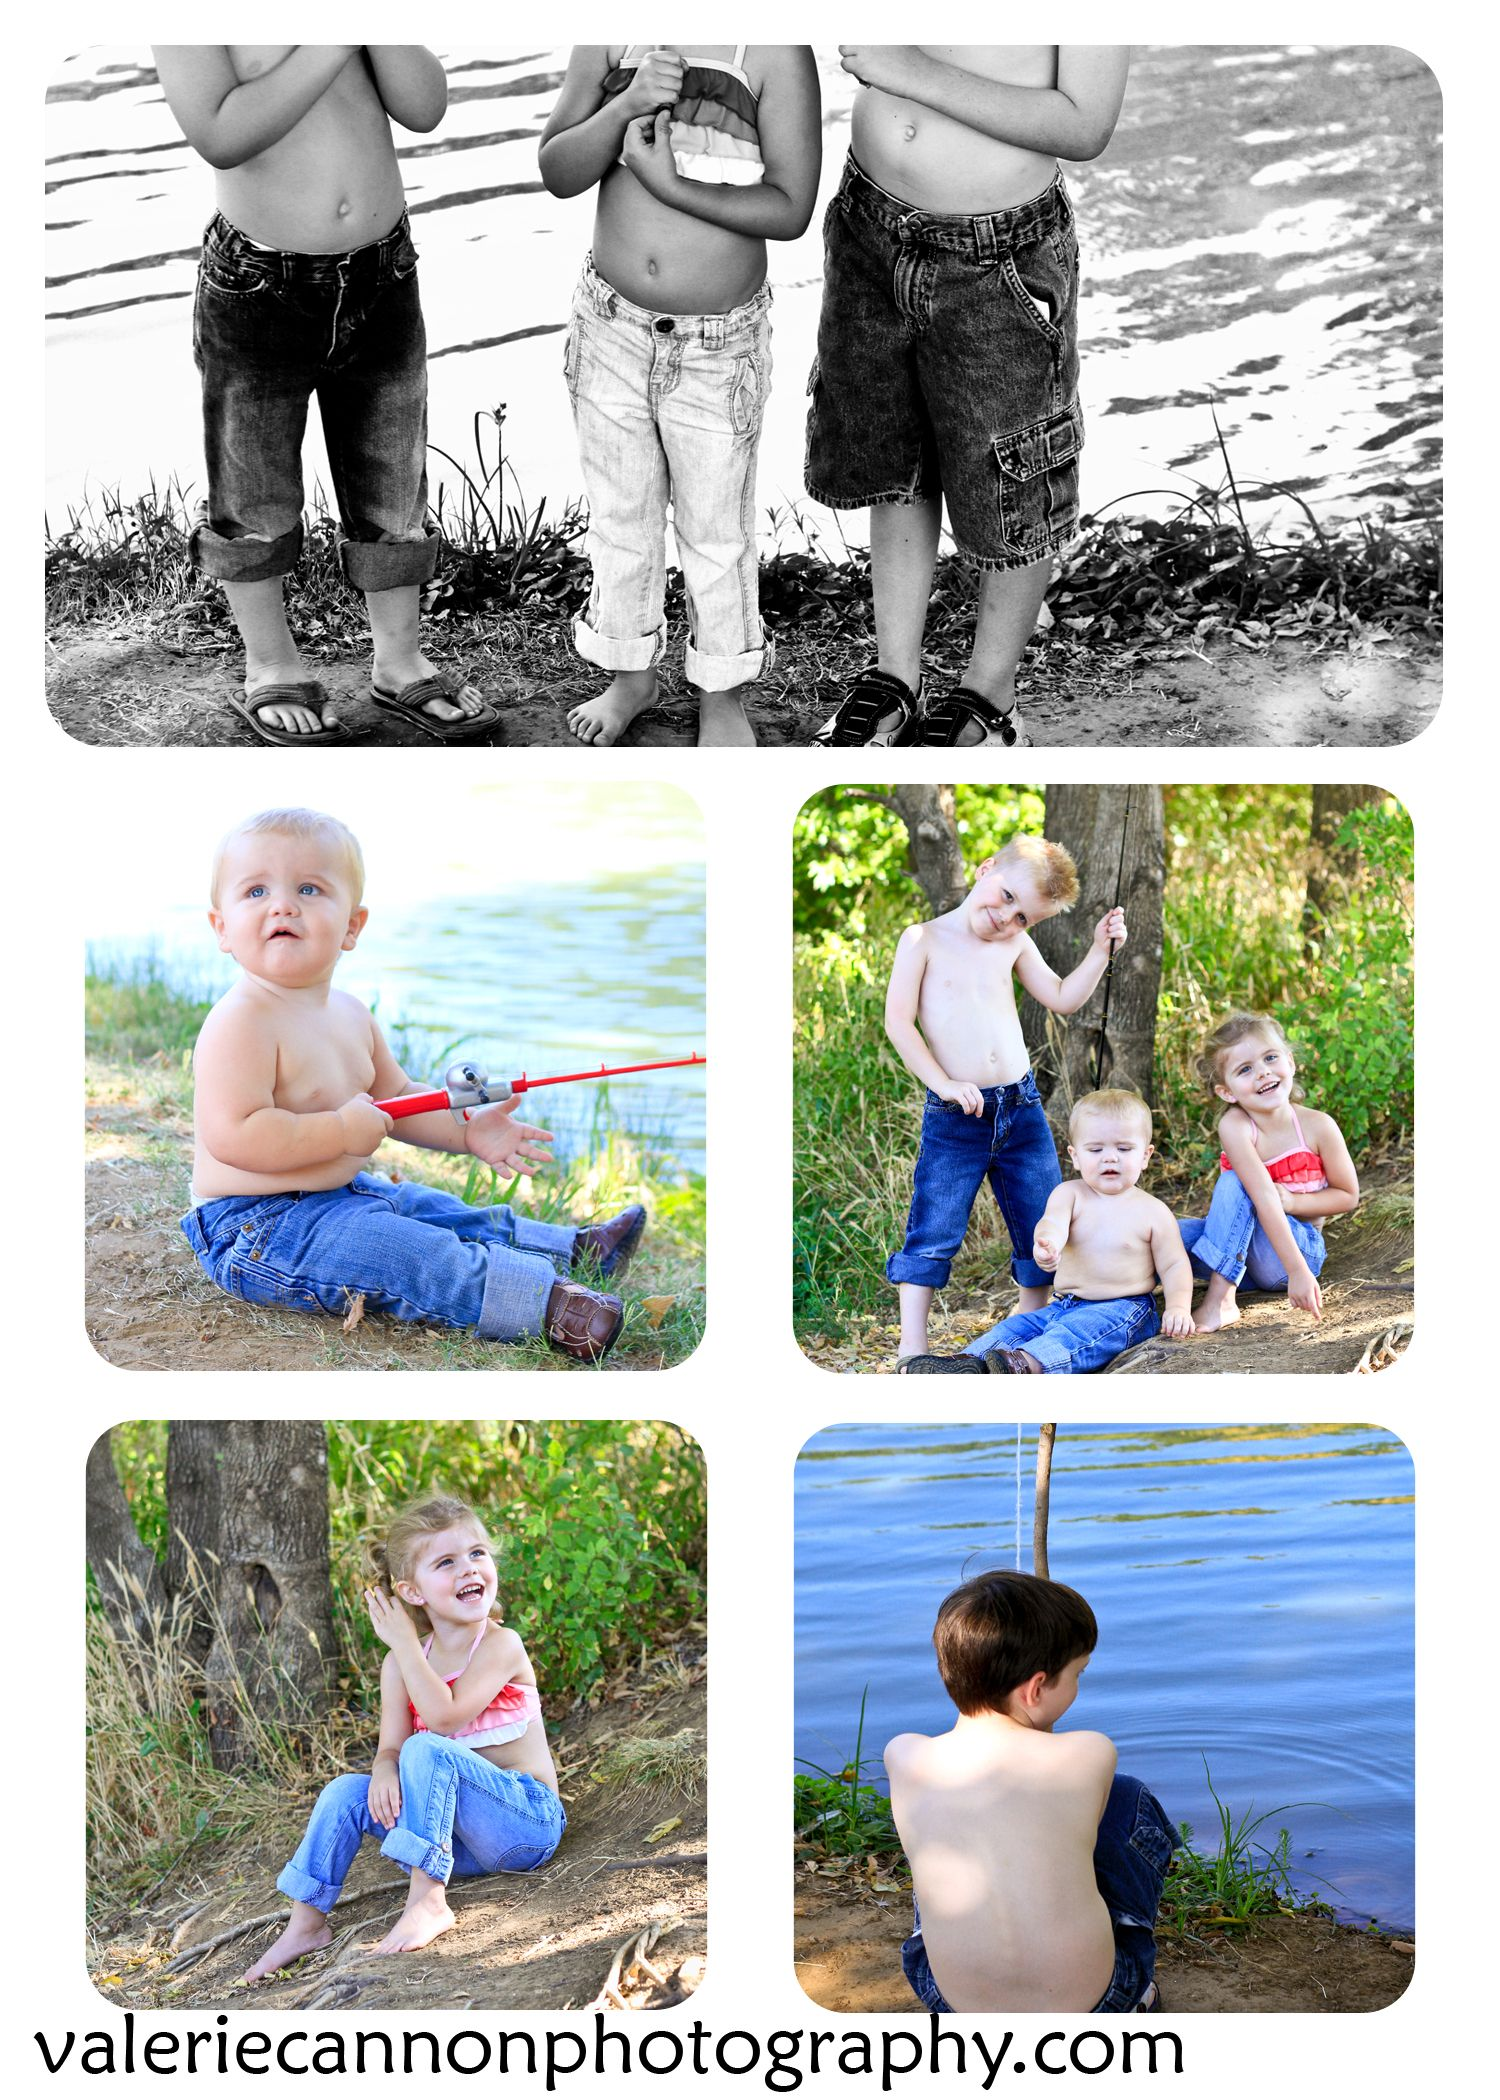 O gosh love these type photos , want some done of my baby boy and girl..love